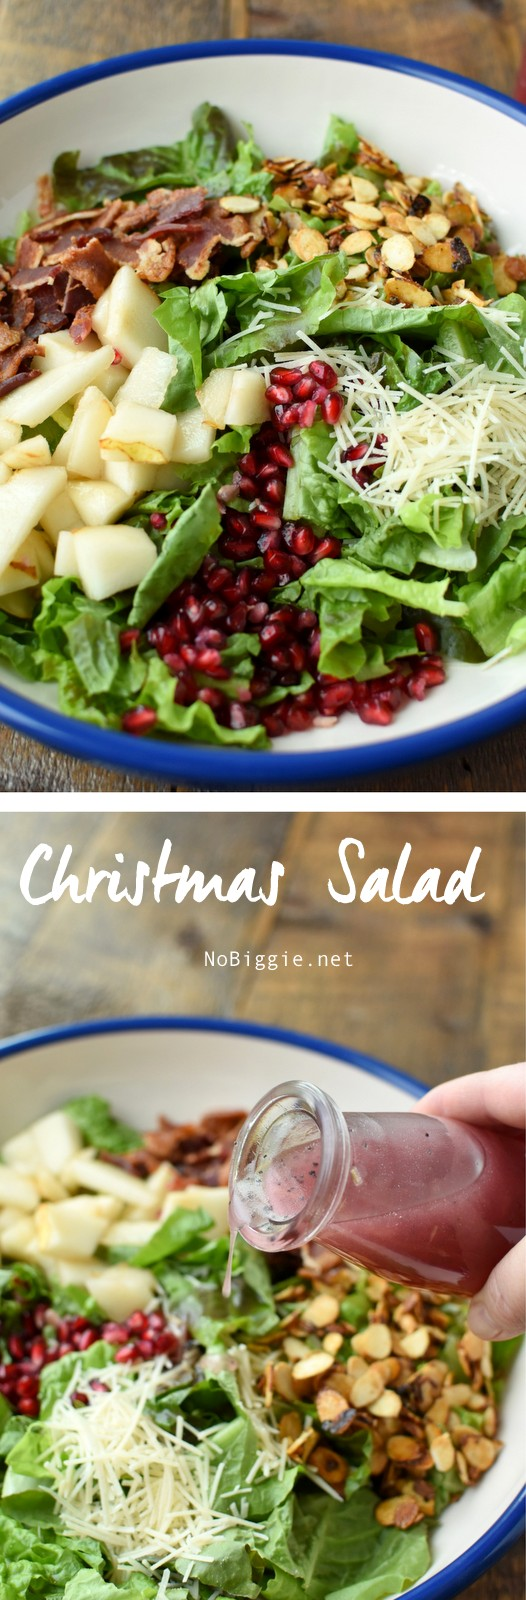 Christmas Salad - classic red and green colors of Christmas with the beautiful ruby red gem tones of the pomegranate arils and a homemade salad dressing! #christmassalad #christmas #saladrecipes #salad #homemadedressing